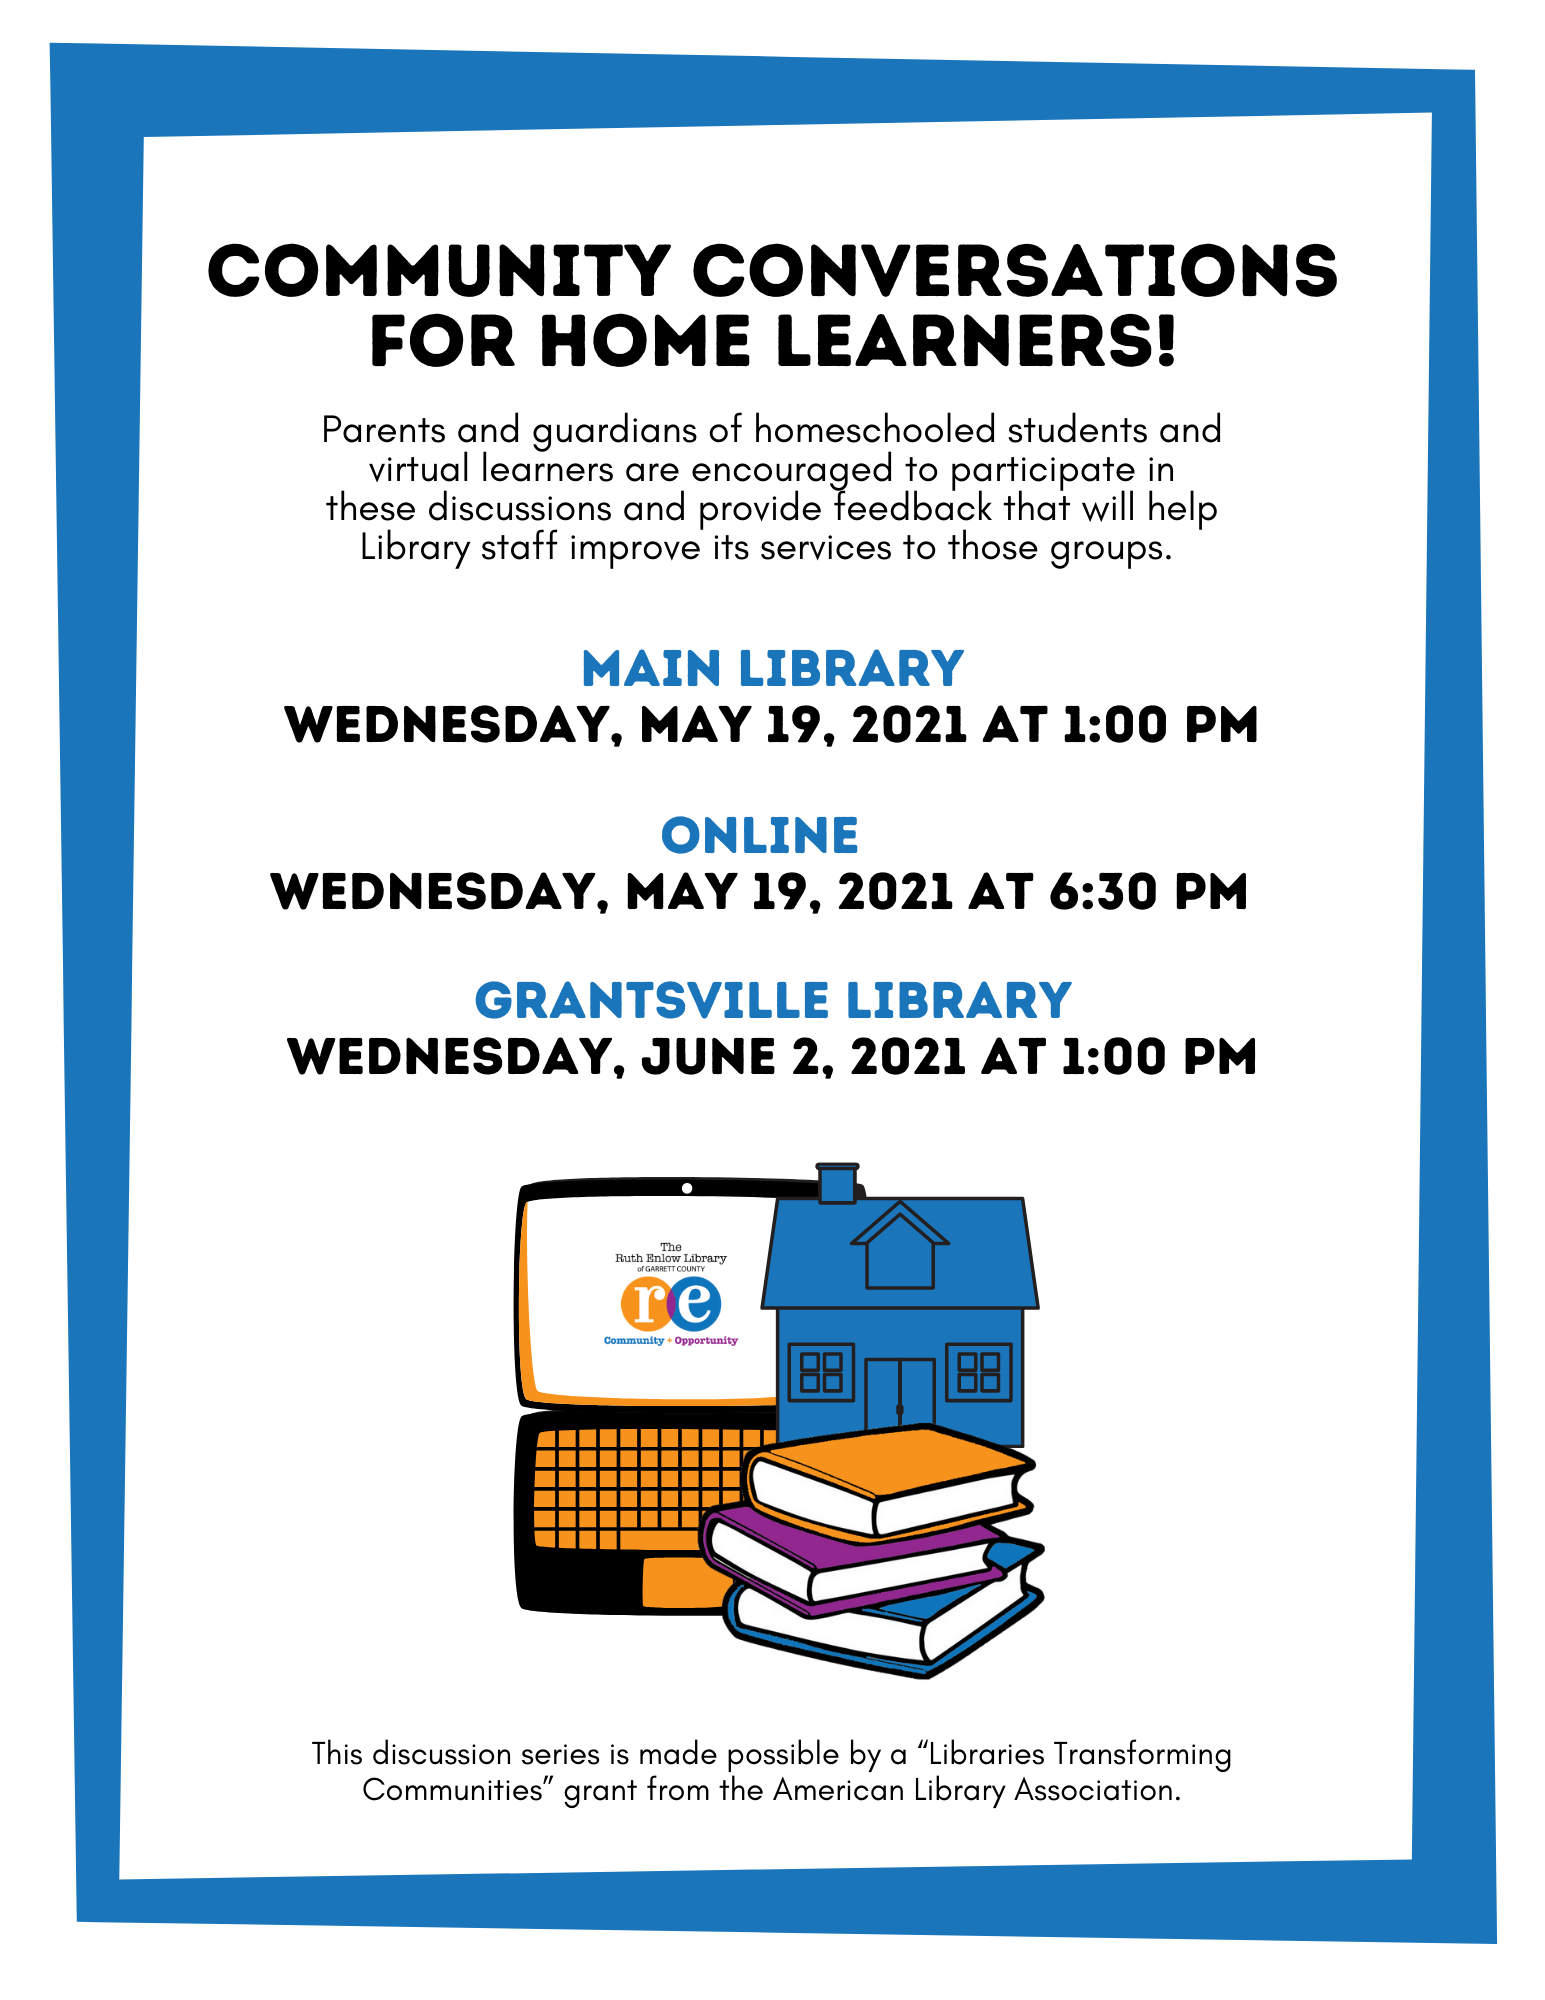 Community Conversations for Home Learners